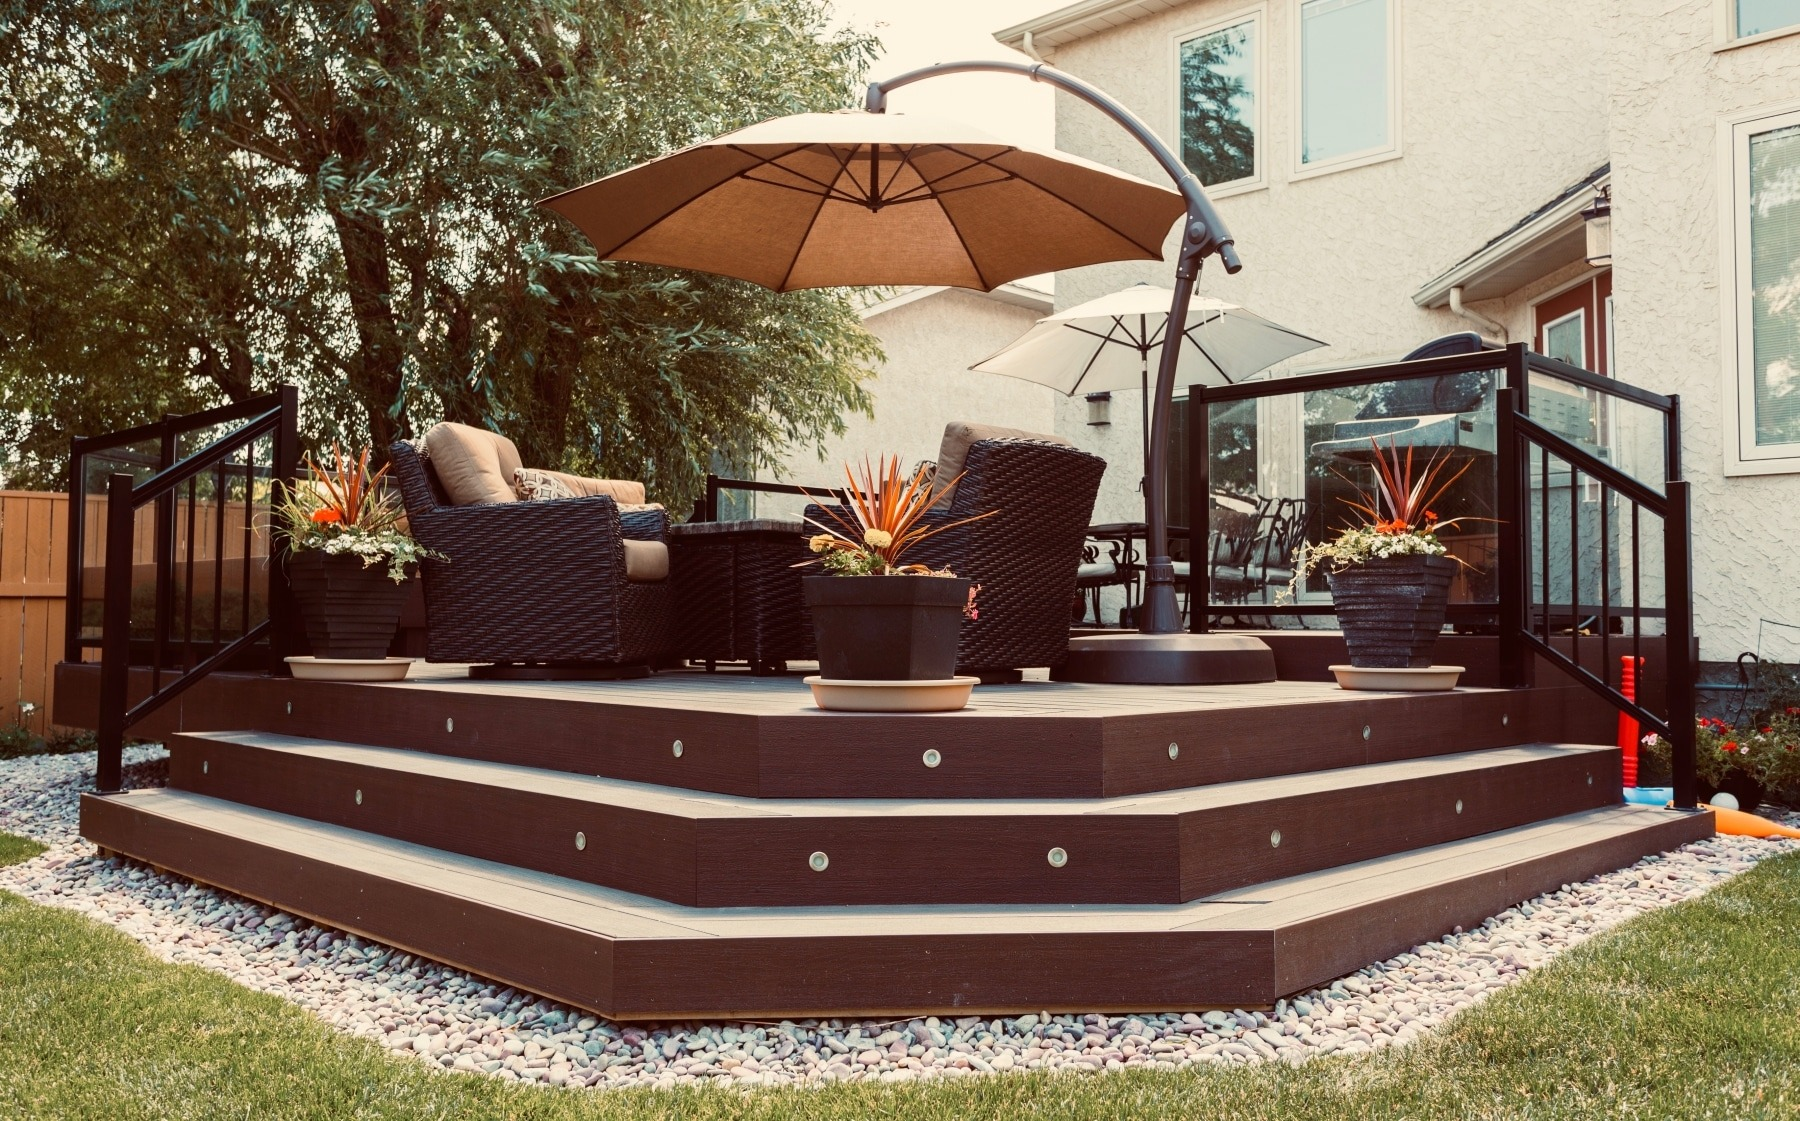 Low maintenance deck using composite deck boards and aluminum and glass railing